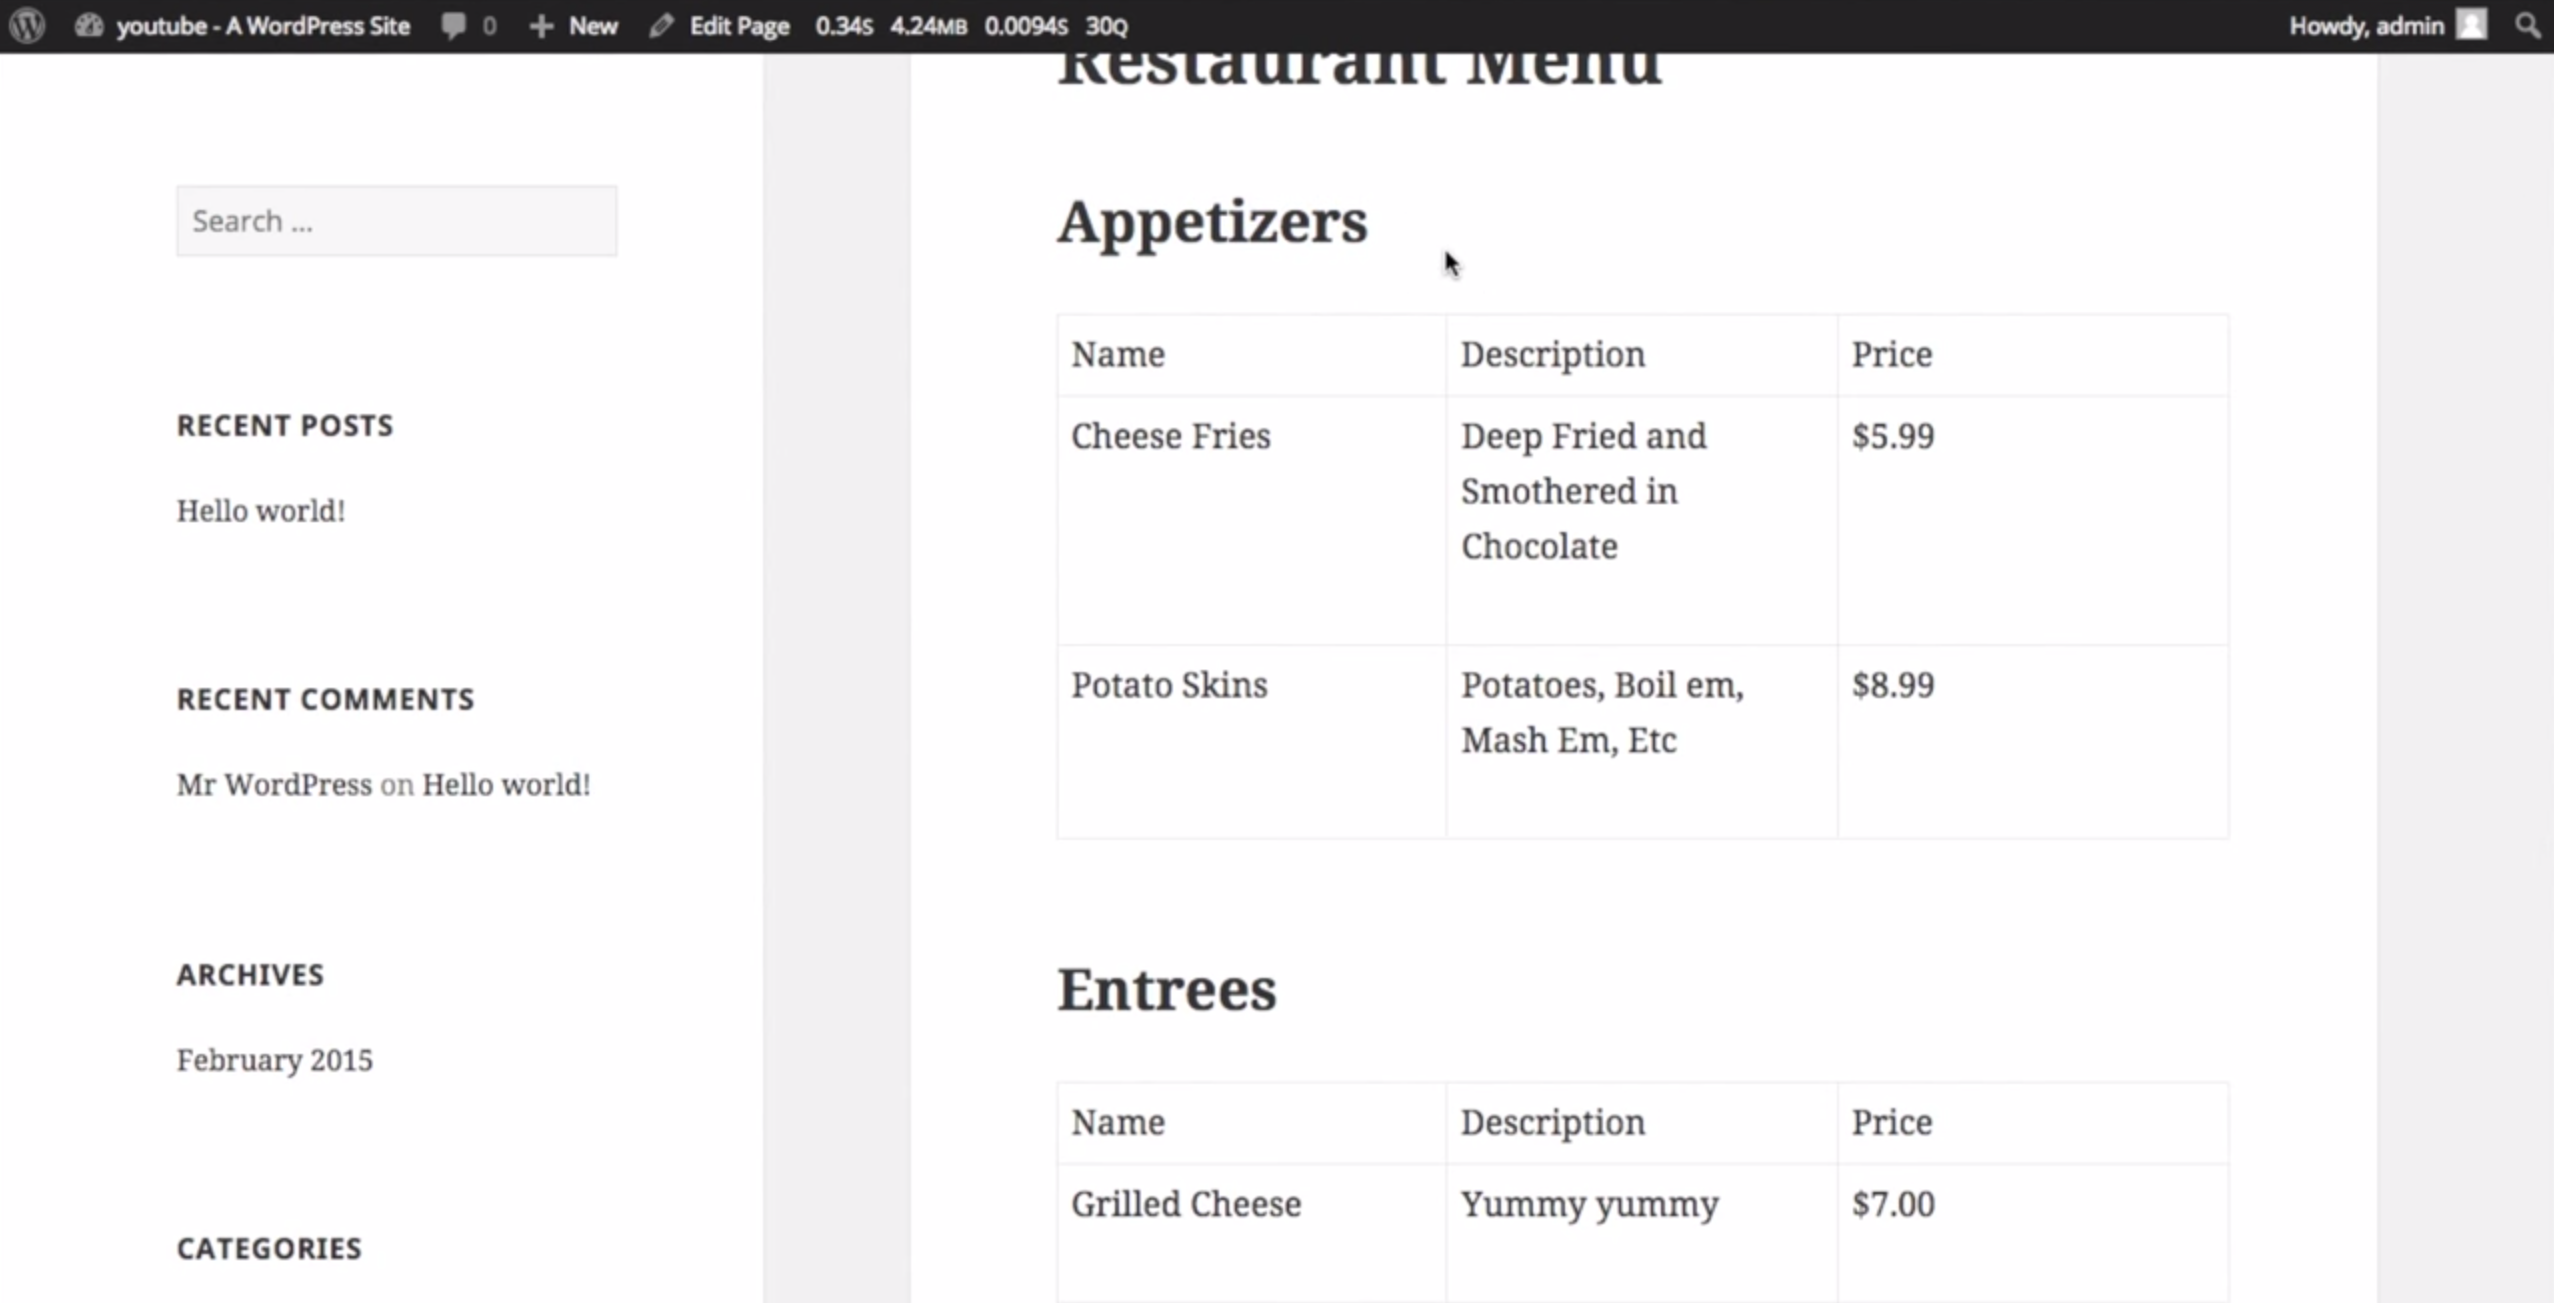 Video: Nested Repeater Fields & Restaurant Menus